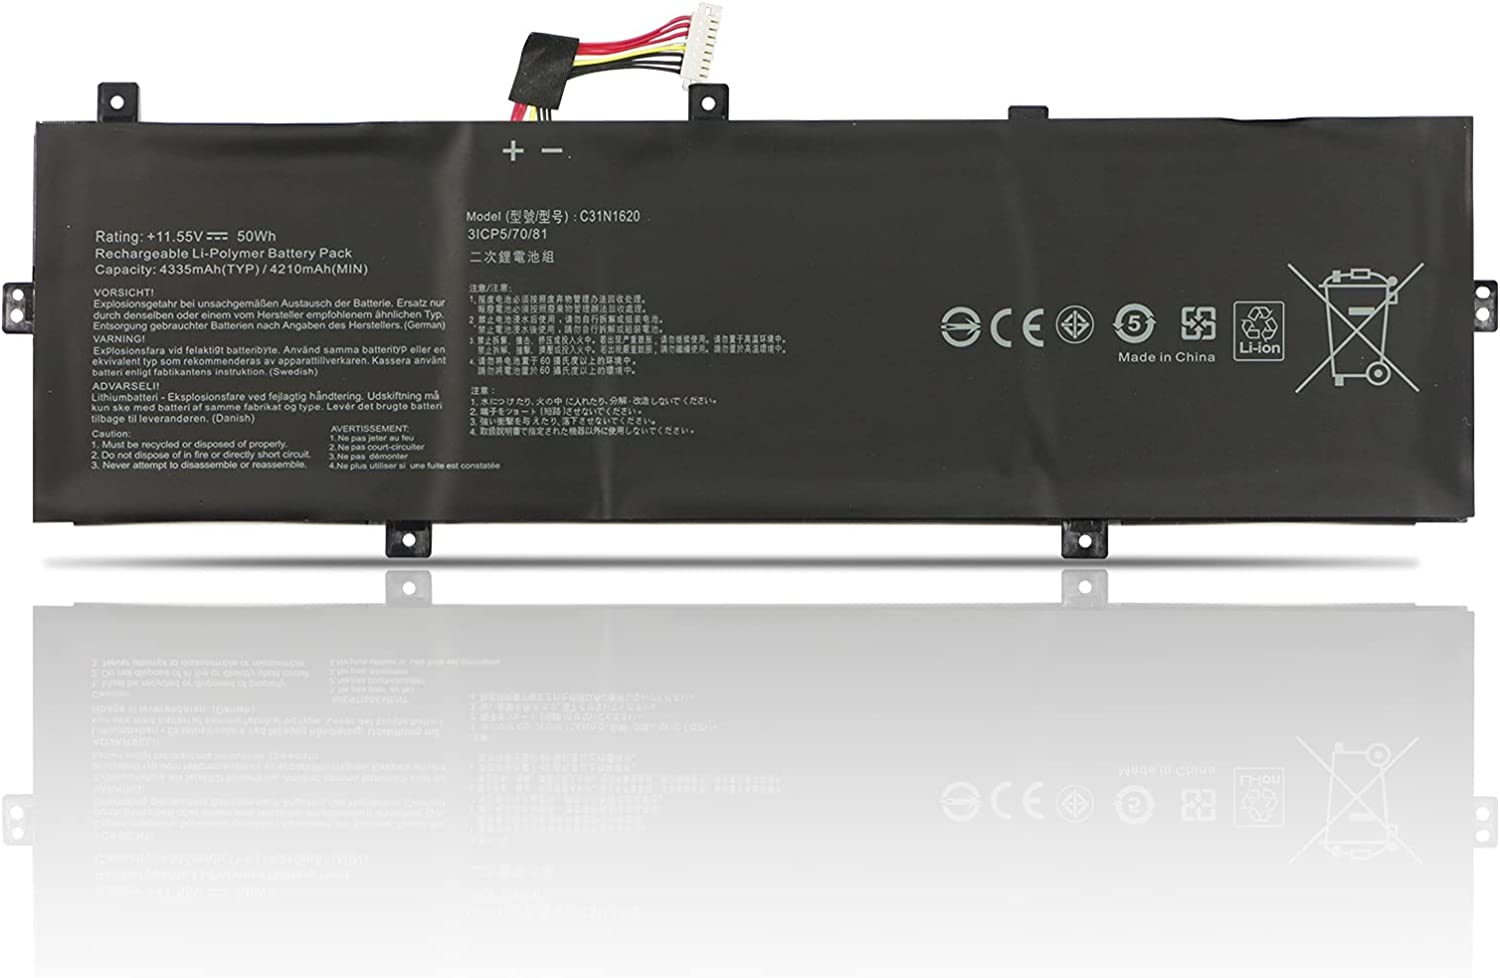 TIIANTE C31N1620 Laptop Ranking TOP8 Battery for UX430U Asus UX430UQ Zenbook Our shop most popular